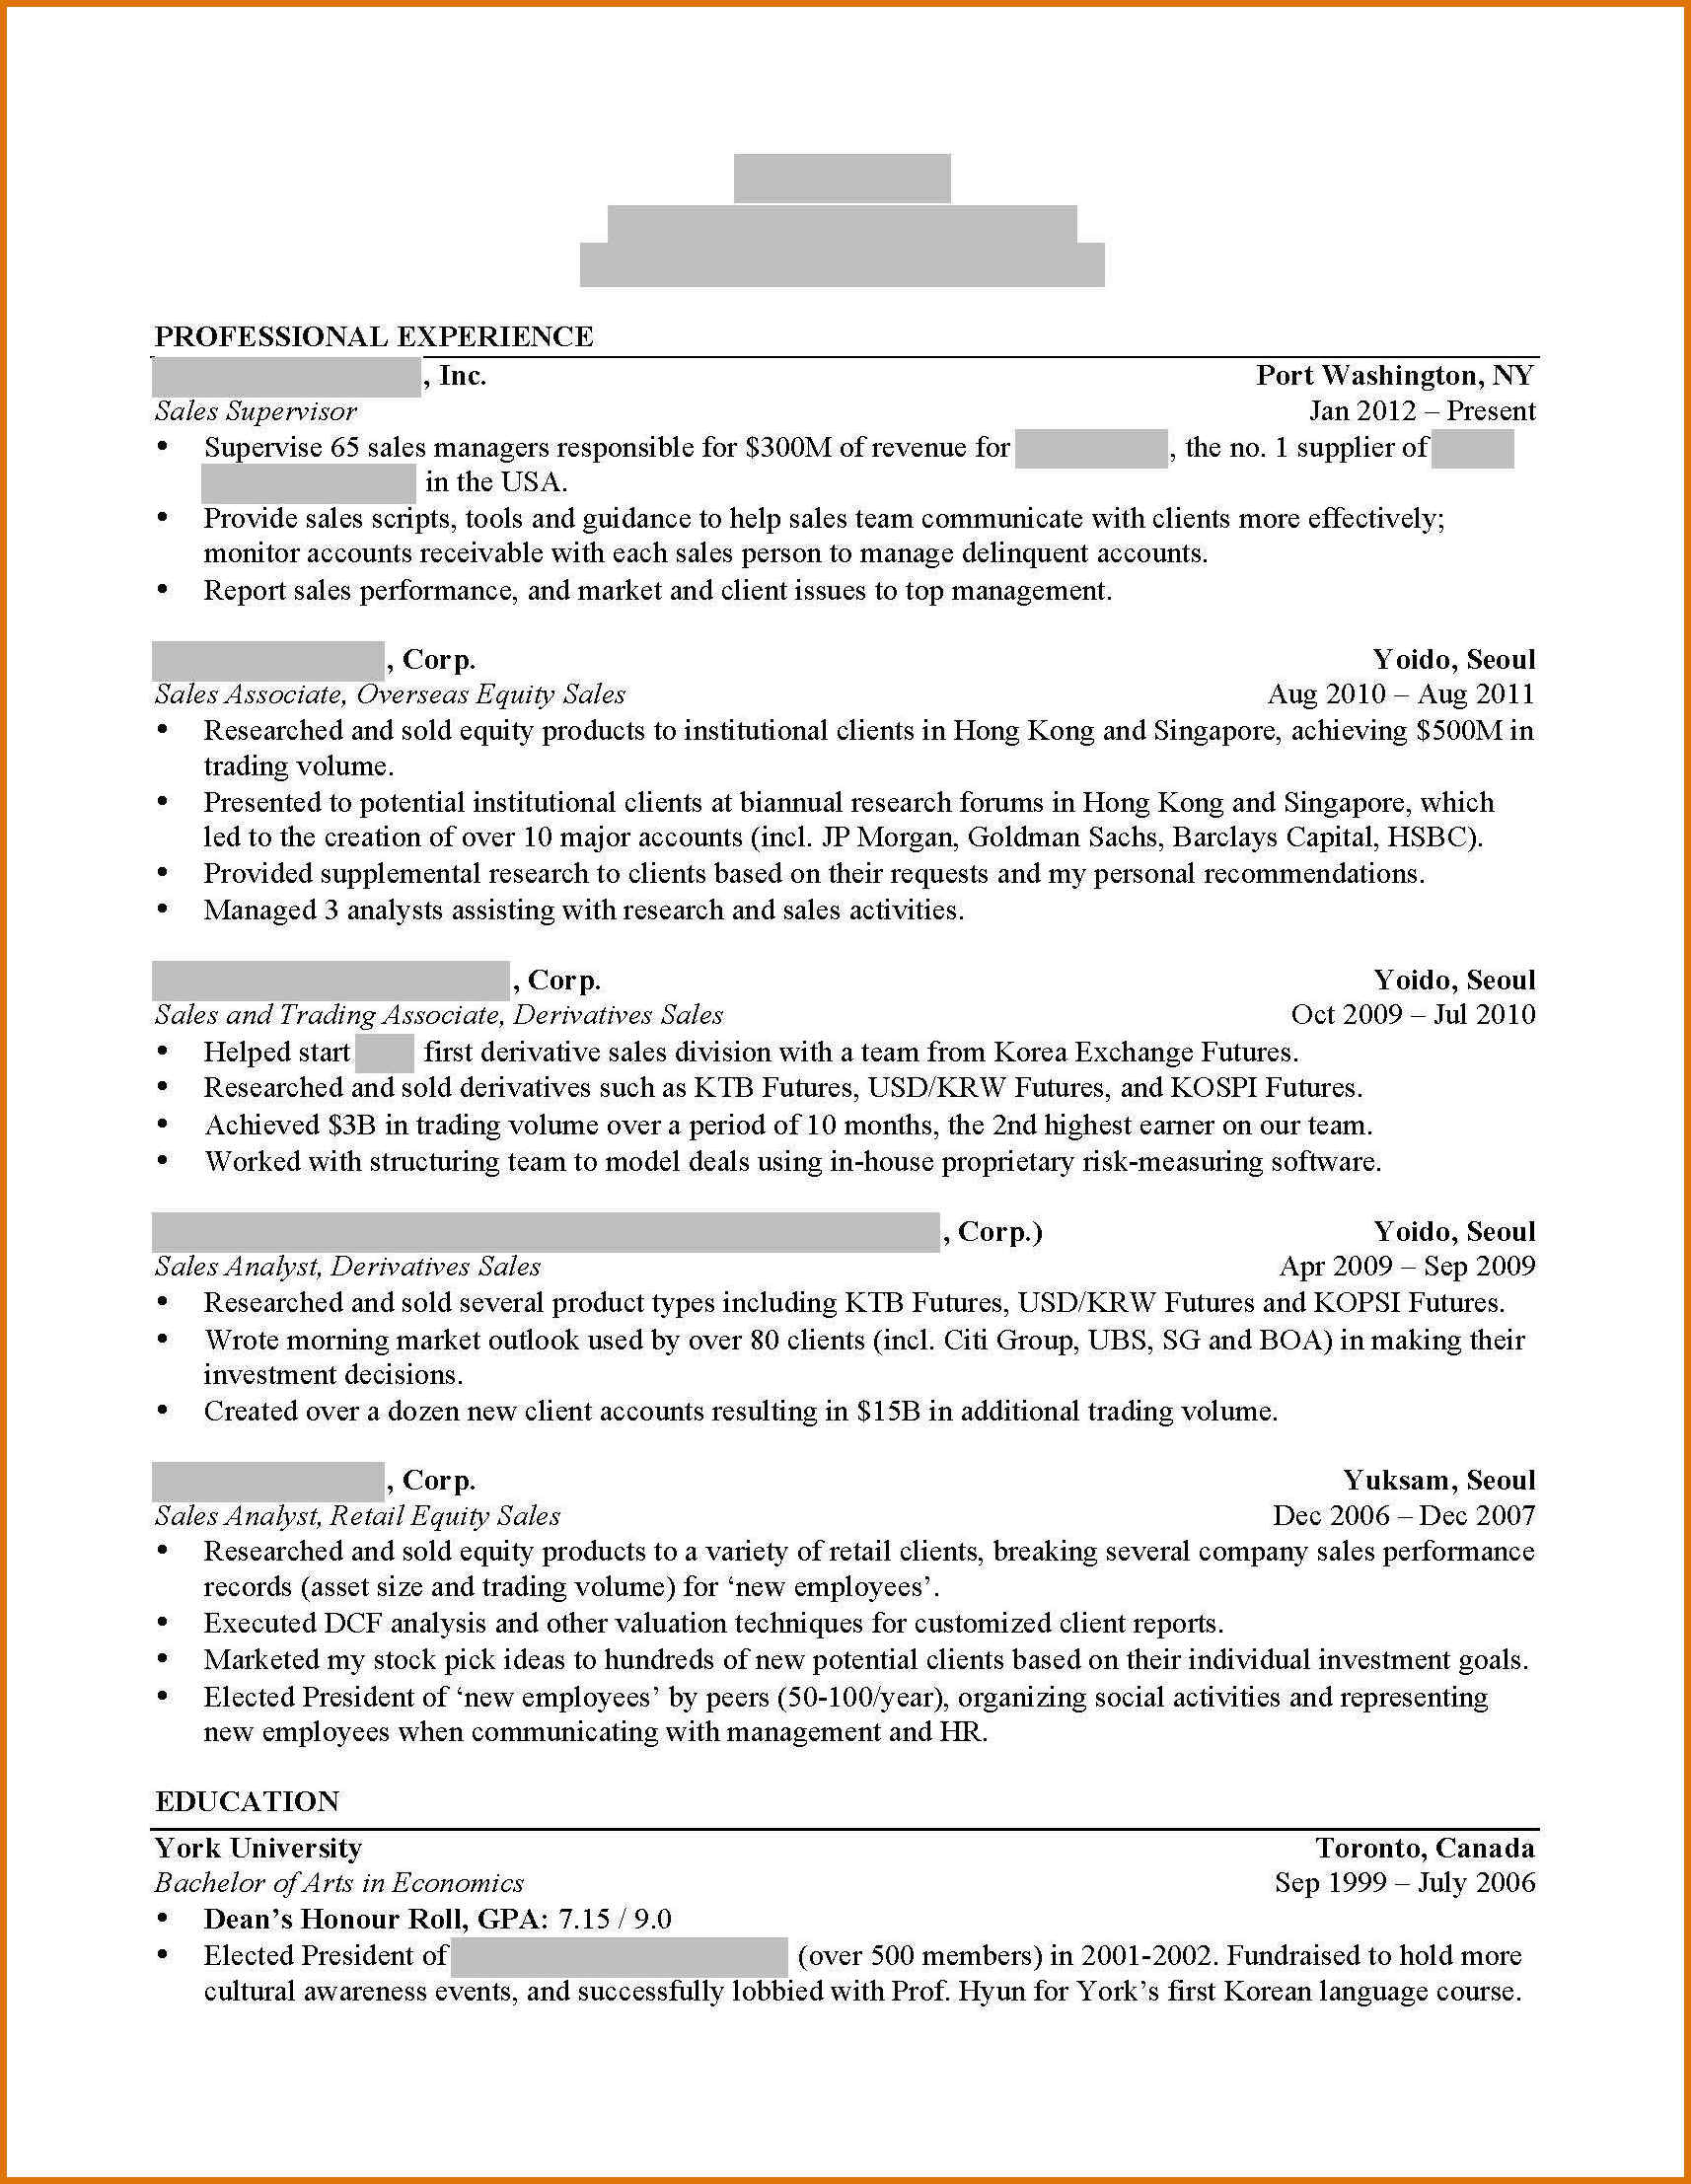 009 Transform Harvard Business School Resume Style On Hbs Class Of Essay Questions Amusing With Mit Length Format Word Counts Tips Limit Book Analysis Awful Advice Full